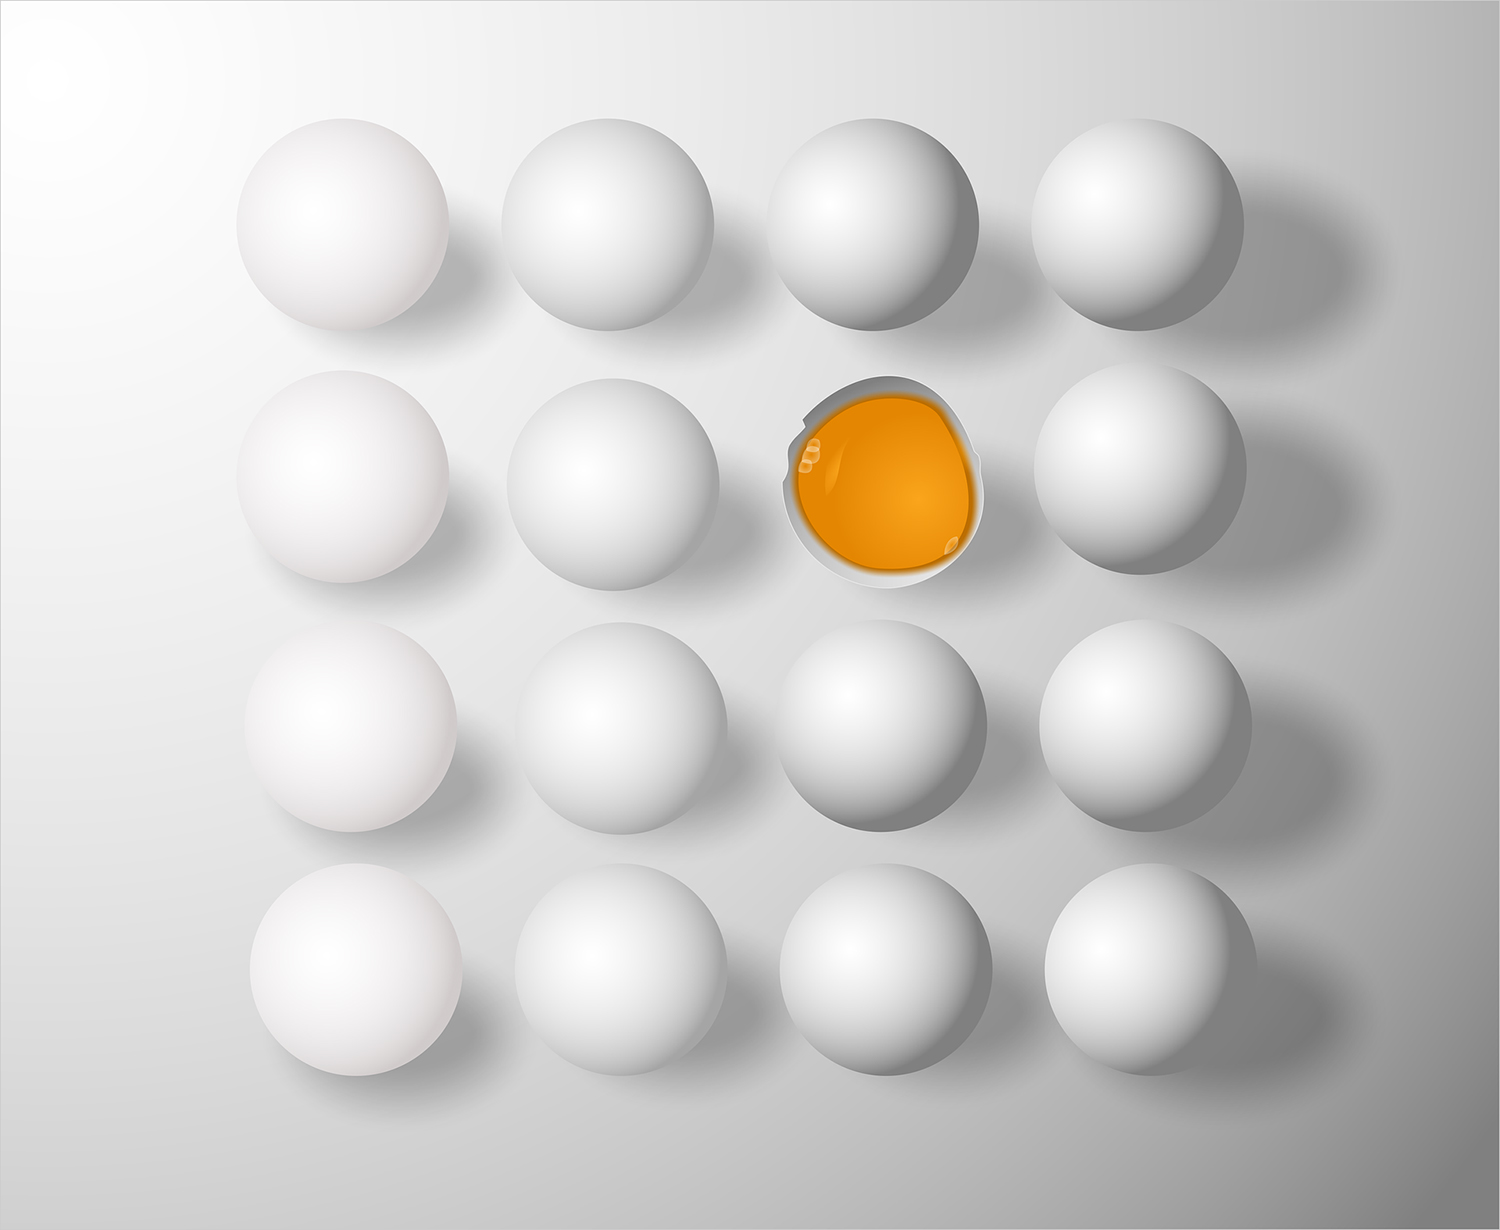 Vector Image Of Eggs Isolated on White Background